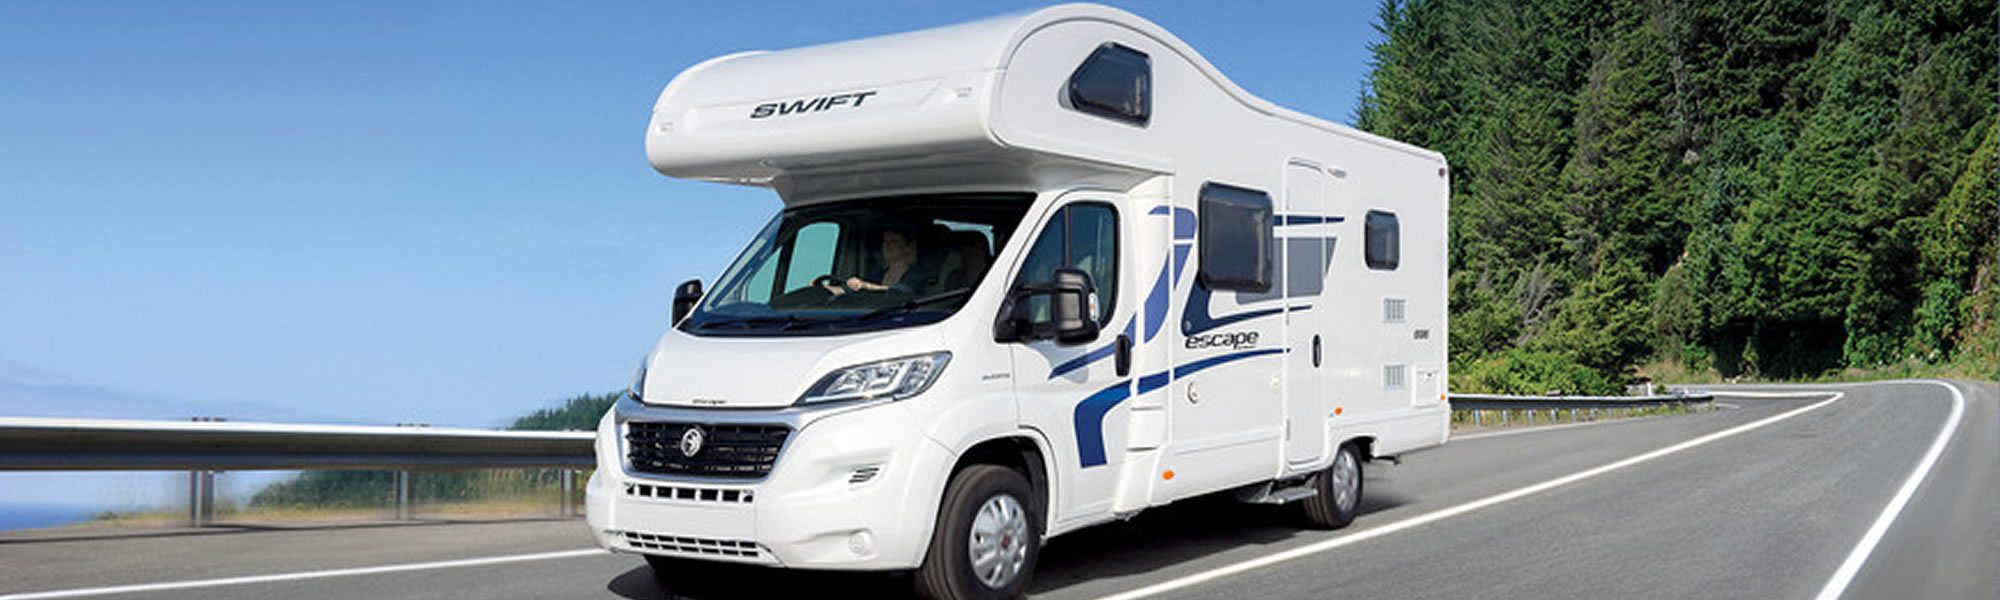 Large 6 Berth Family Sized Motorhomes